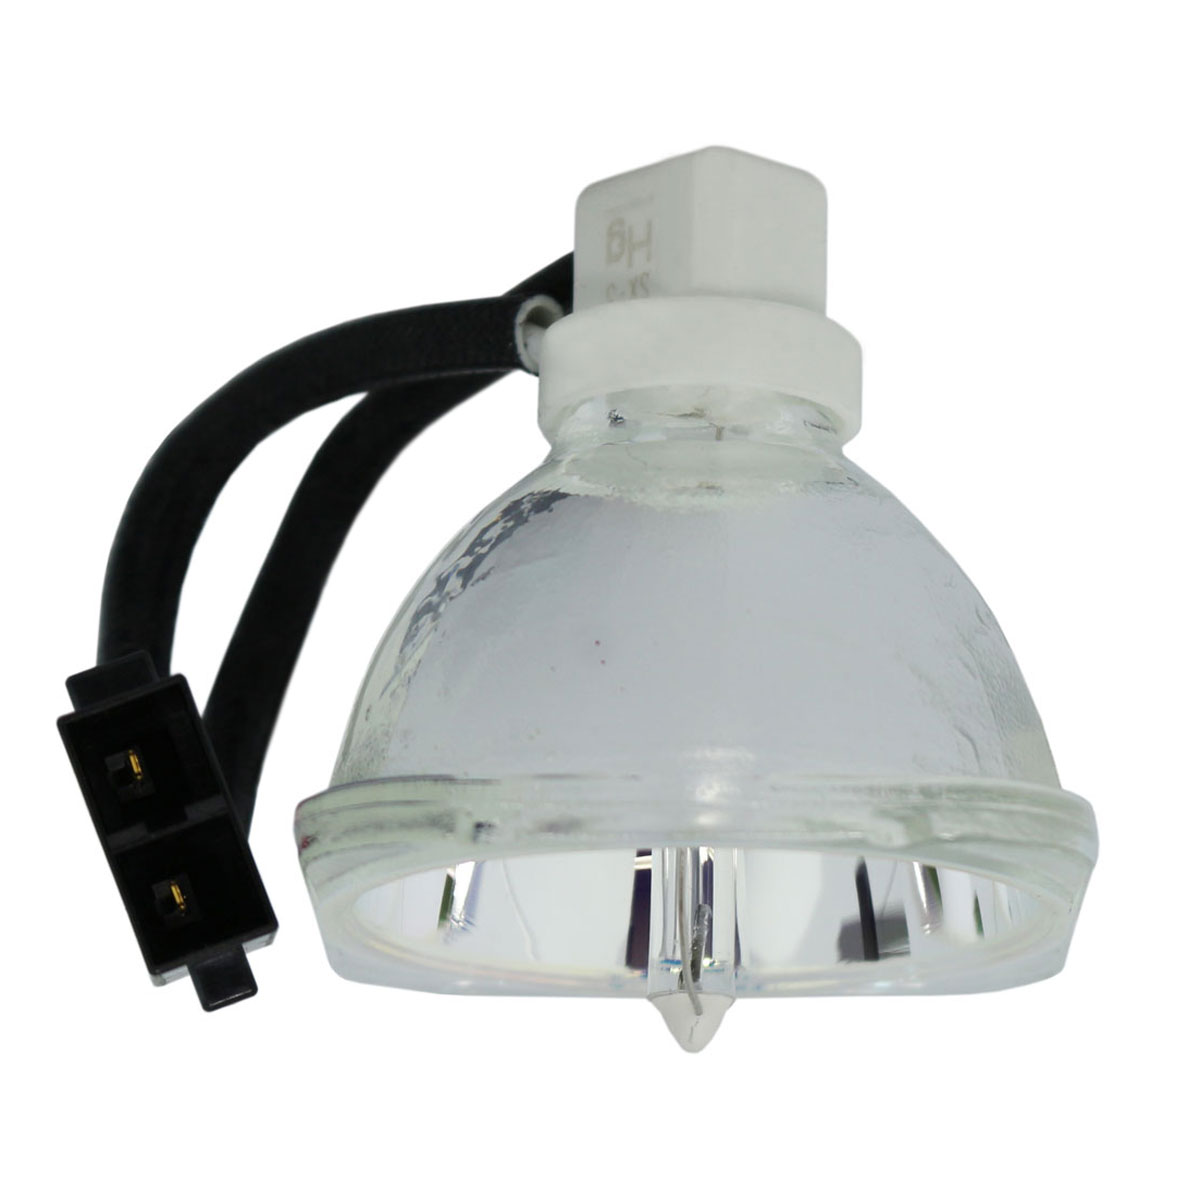 Original Phoenix Projector Lamp Replacement for Sharp PG-D3010X (Bulb Only) - image 4 of 5